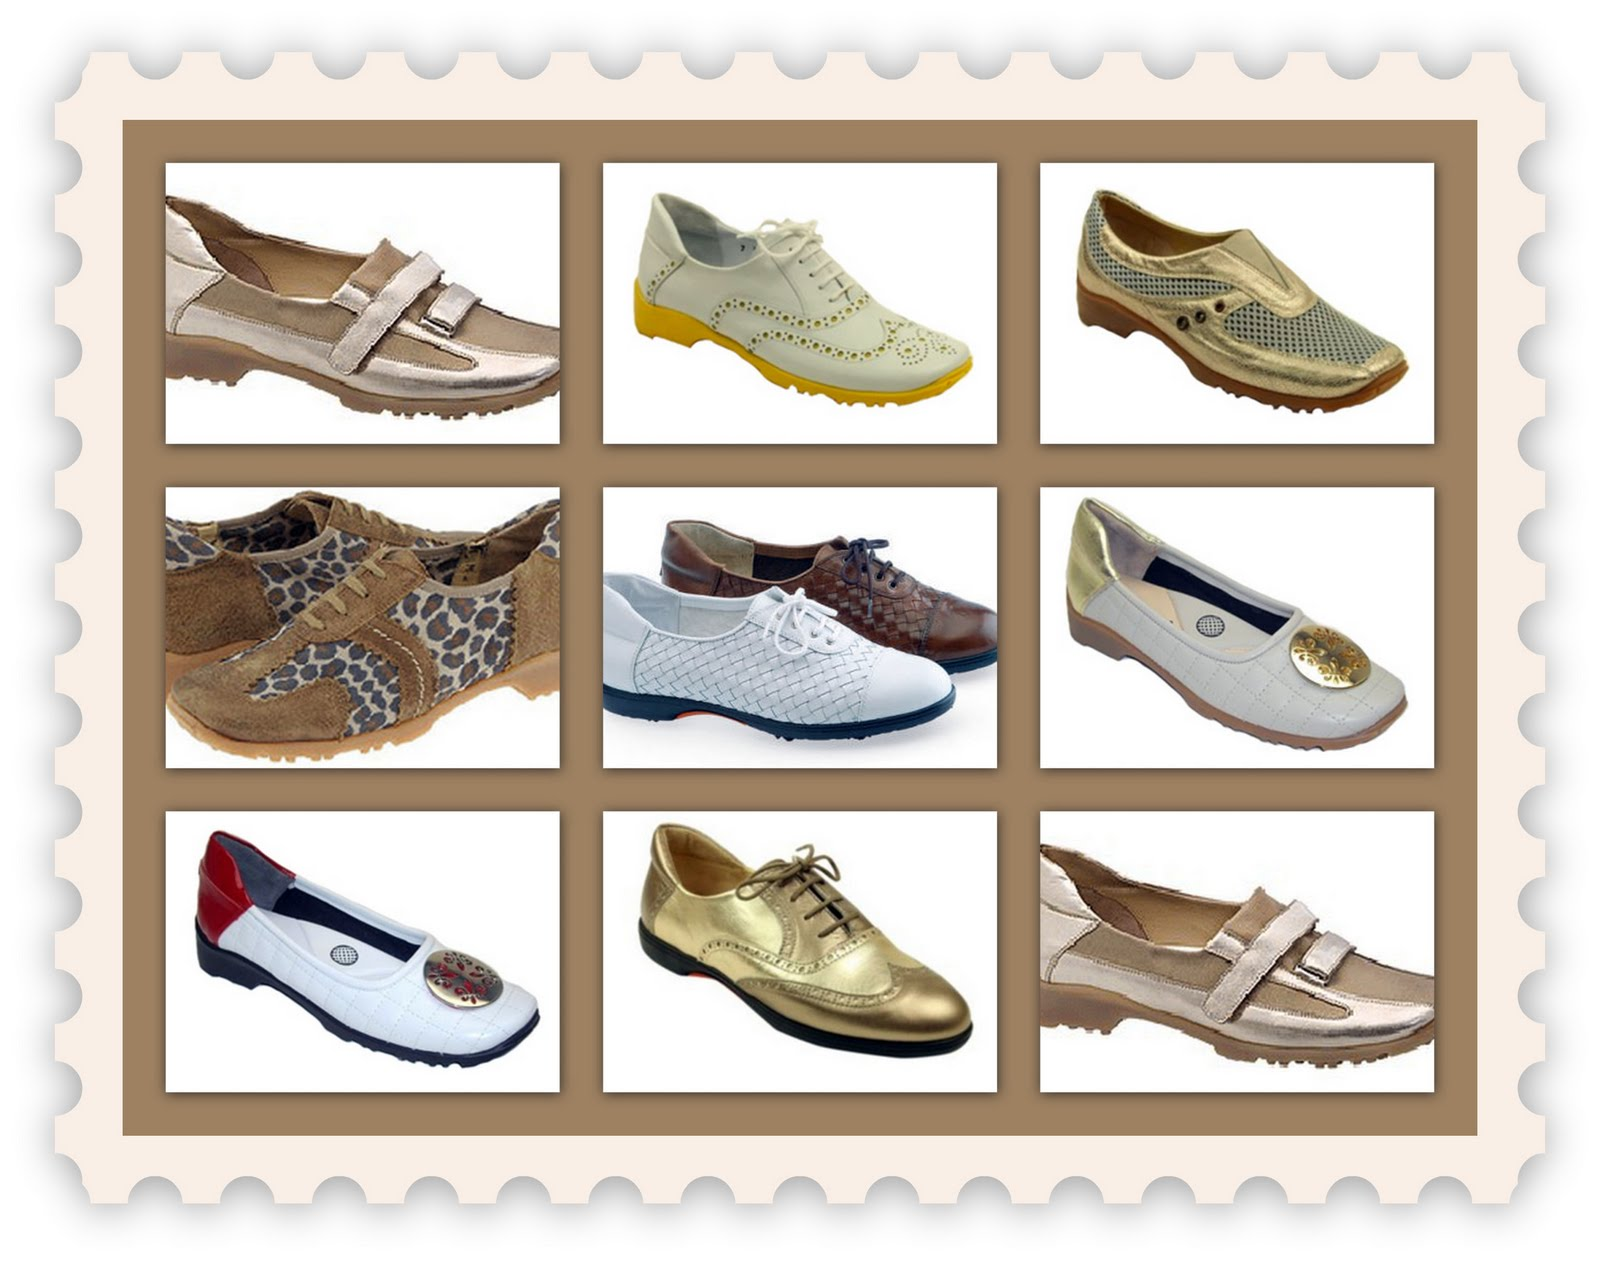 new style da617 b5262 Ring in 2012 with a new pair of Sesto Meucci Women s Golf Shoes crafted by  the most talented of Italian shoemakers! Because of the success of Sesto s  high ...